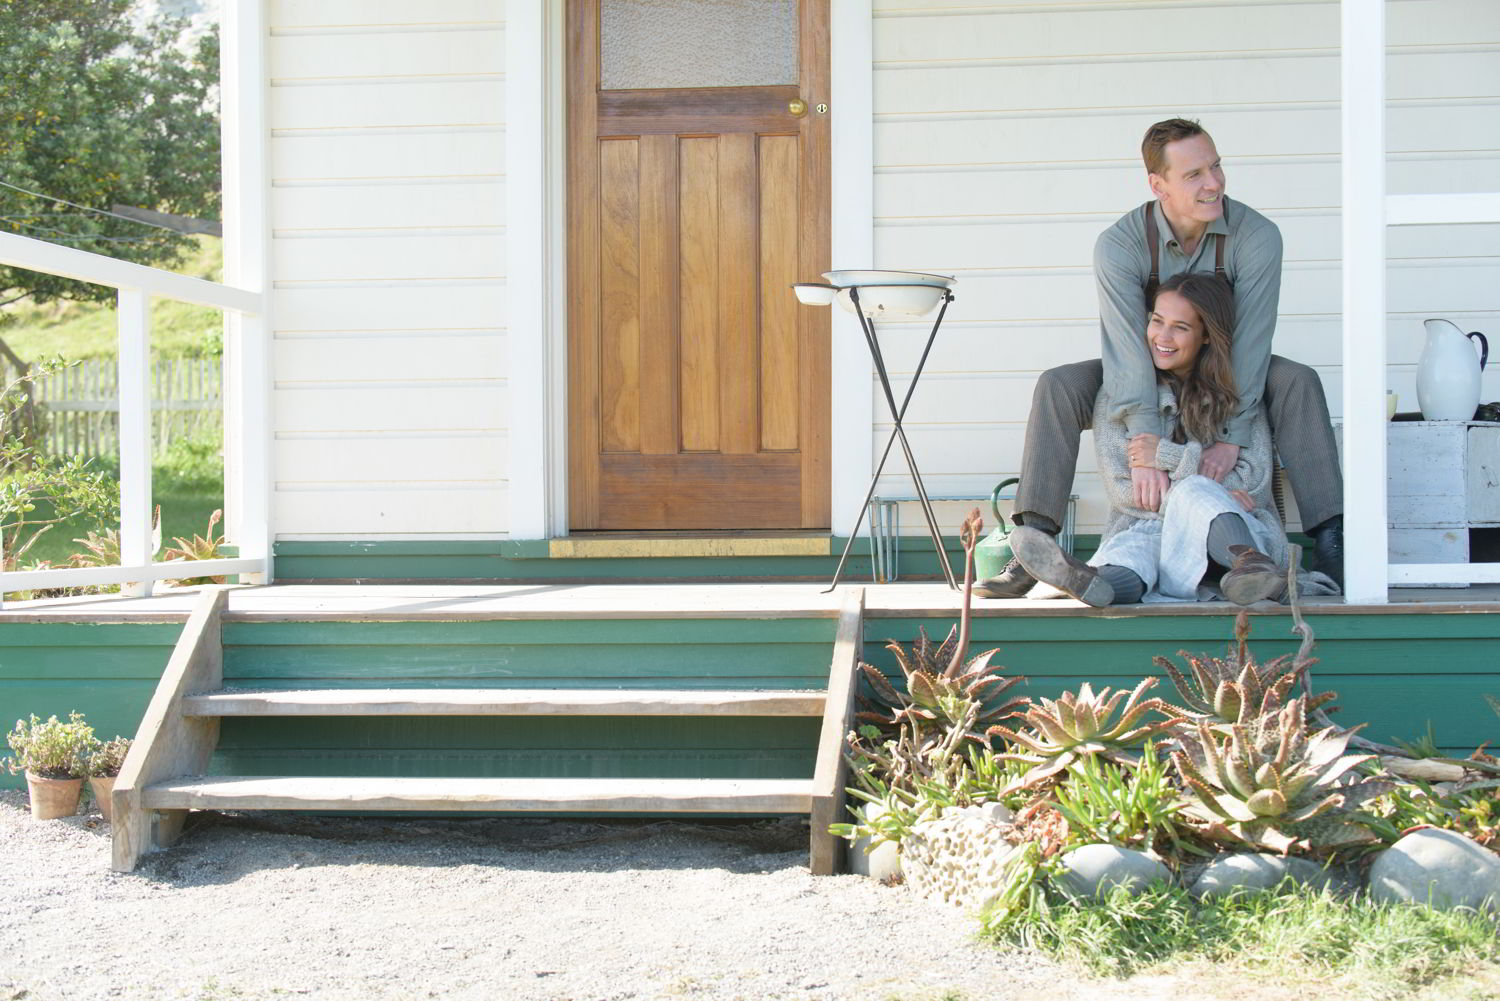 The Light Between Oceans di D.Cianfrance con Michael Fassbender e Alicia Vikander ©Asac - la Biennale di Venezia